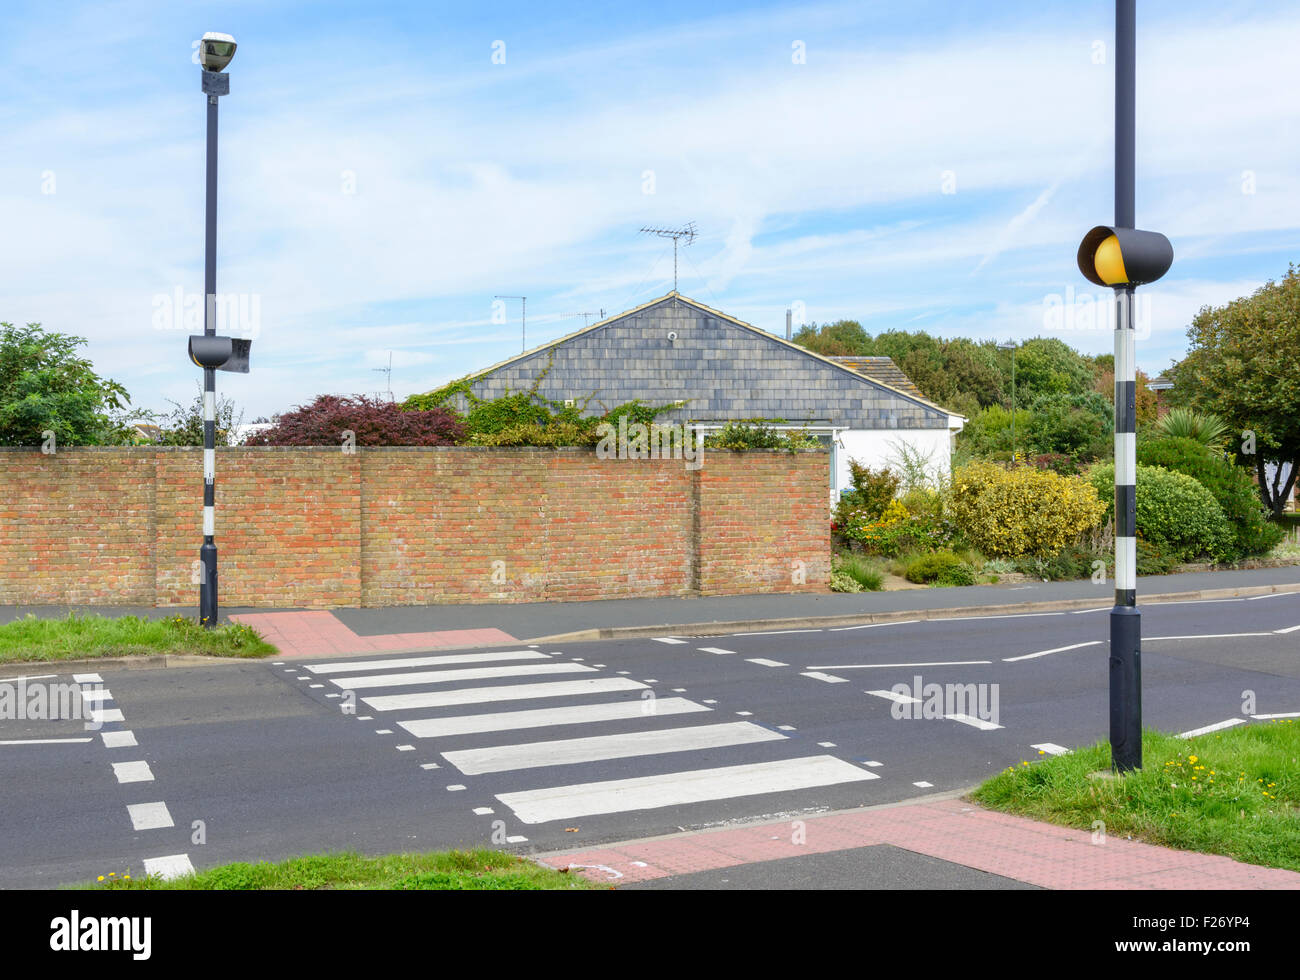 Zebra crossing across a road in West Sussex, England, UK. Stock Photo